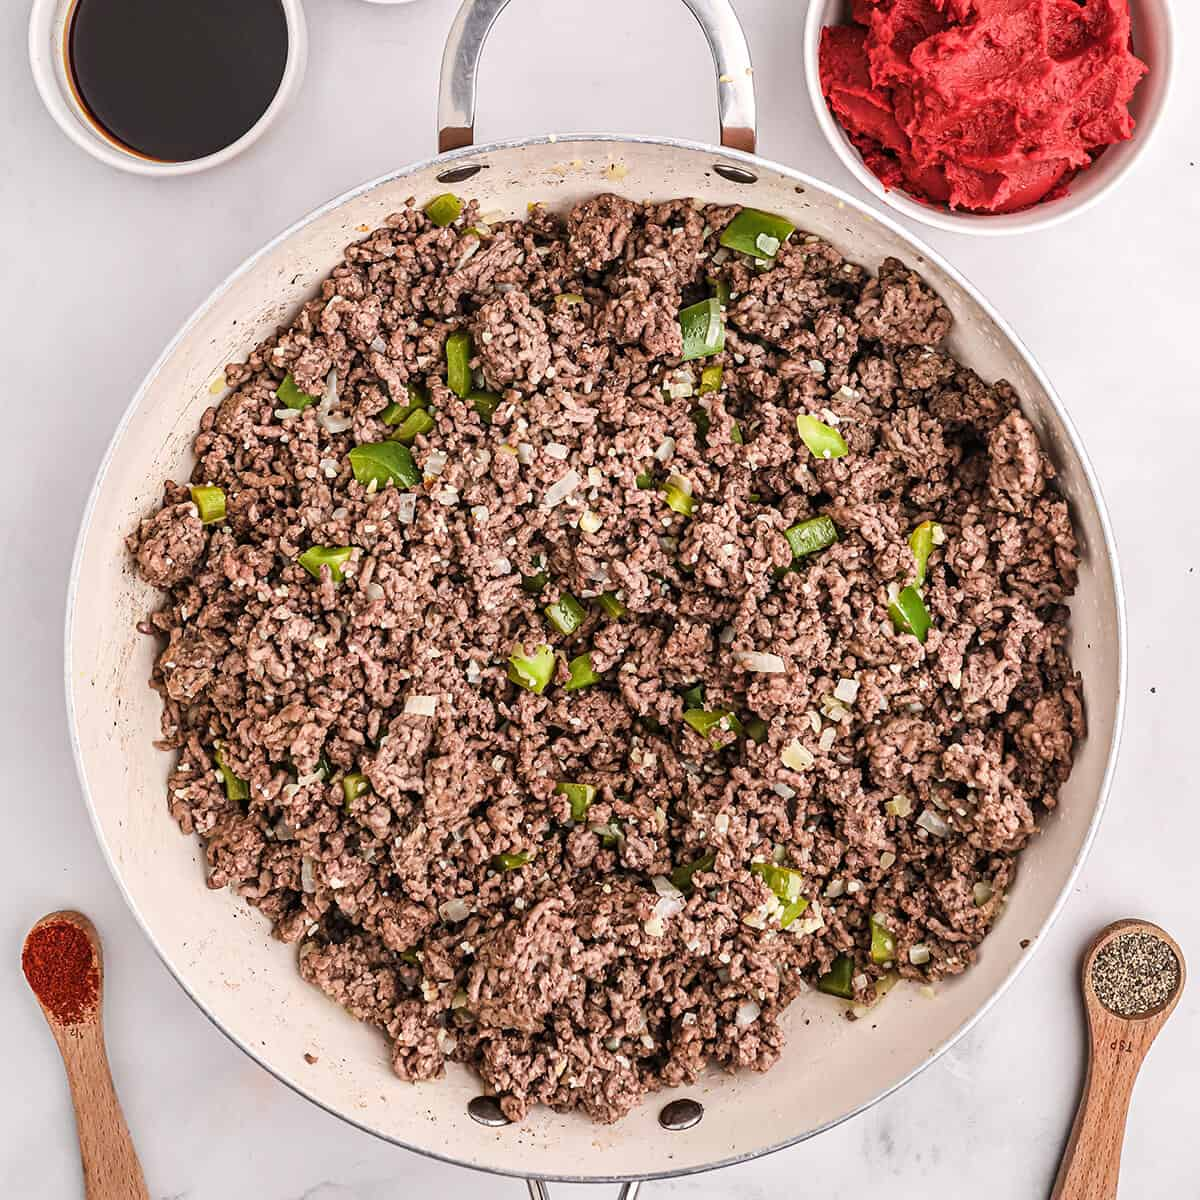 Cooked ground beef with peppers, onions, and garlic.